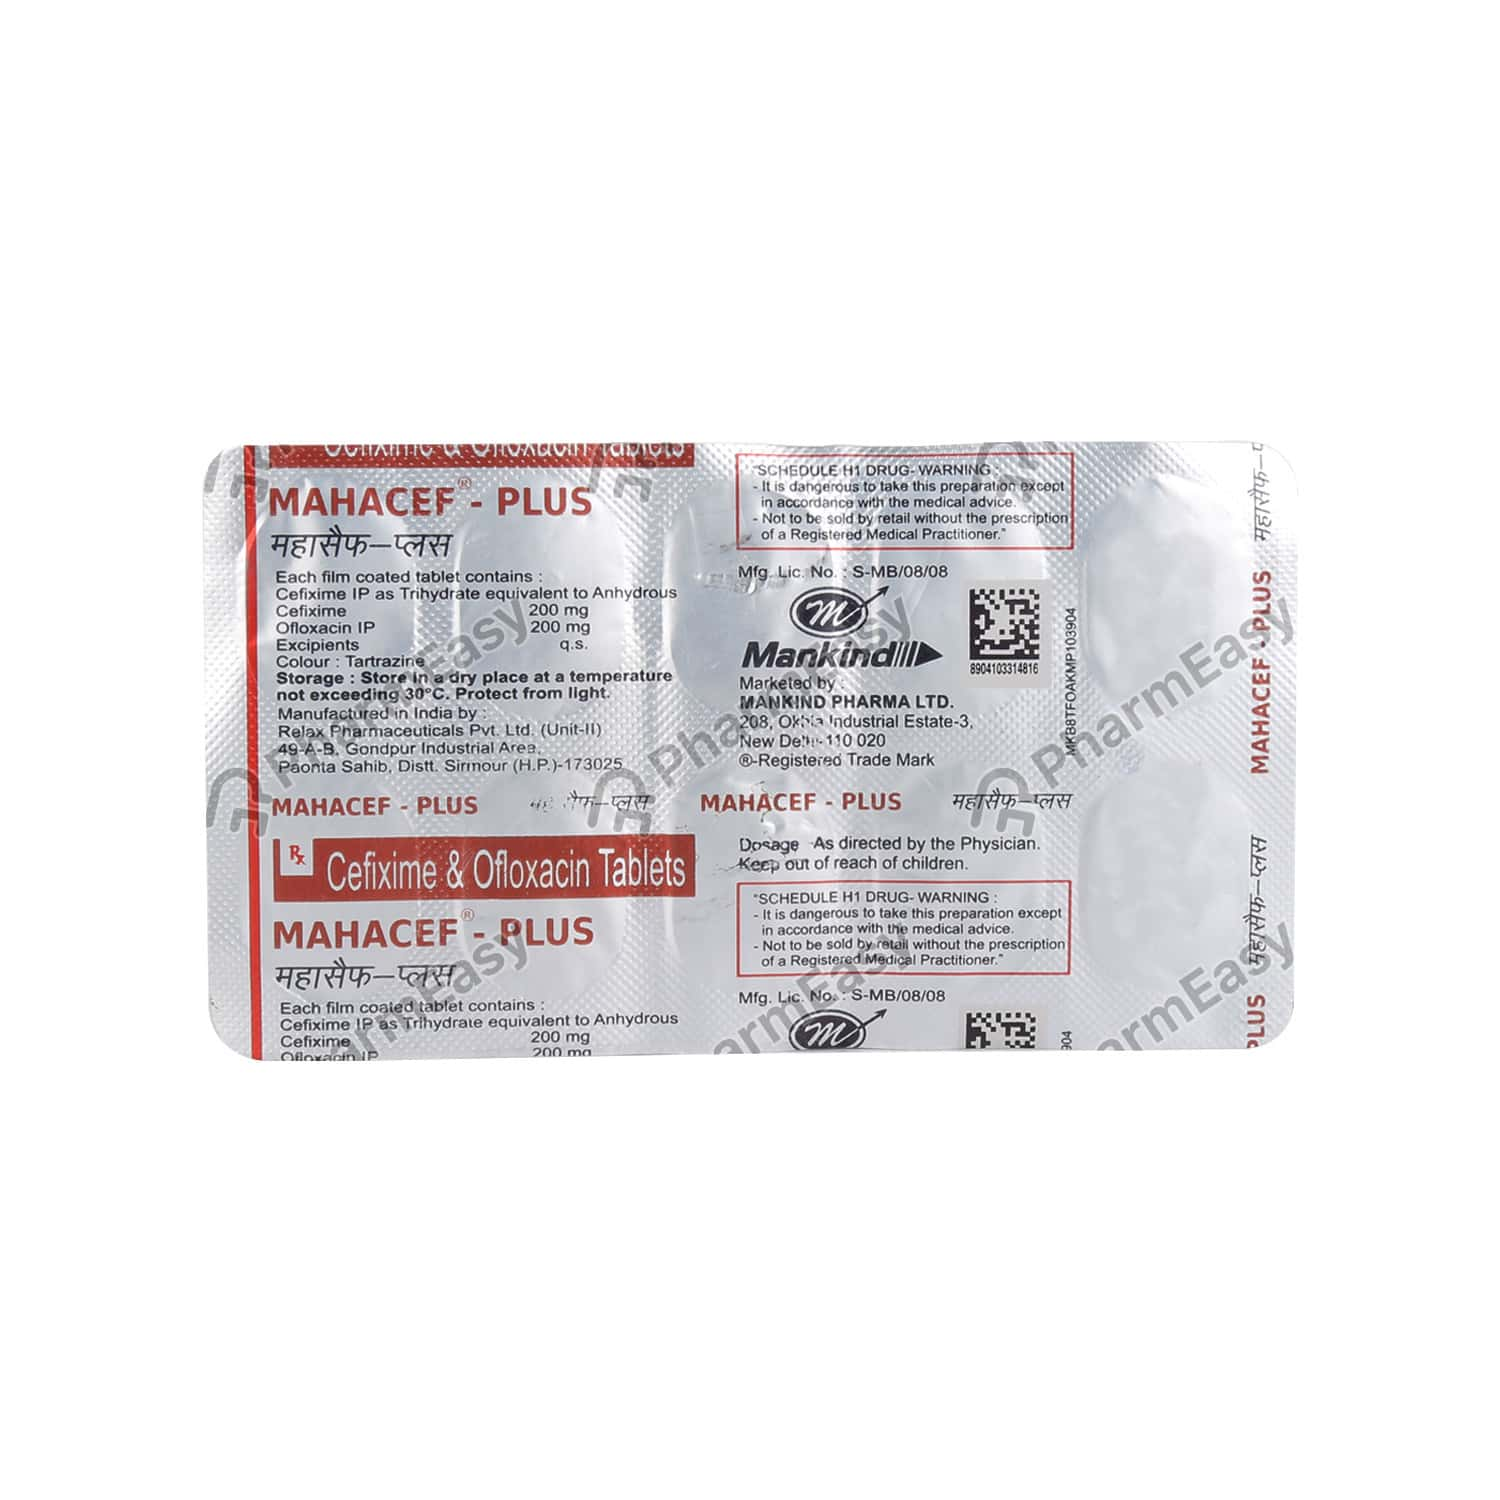 Mahacef Plus 200mg Tablet